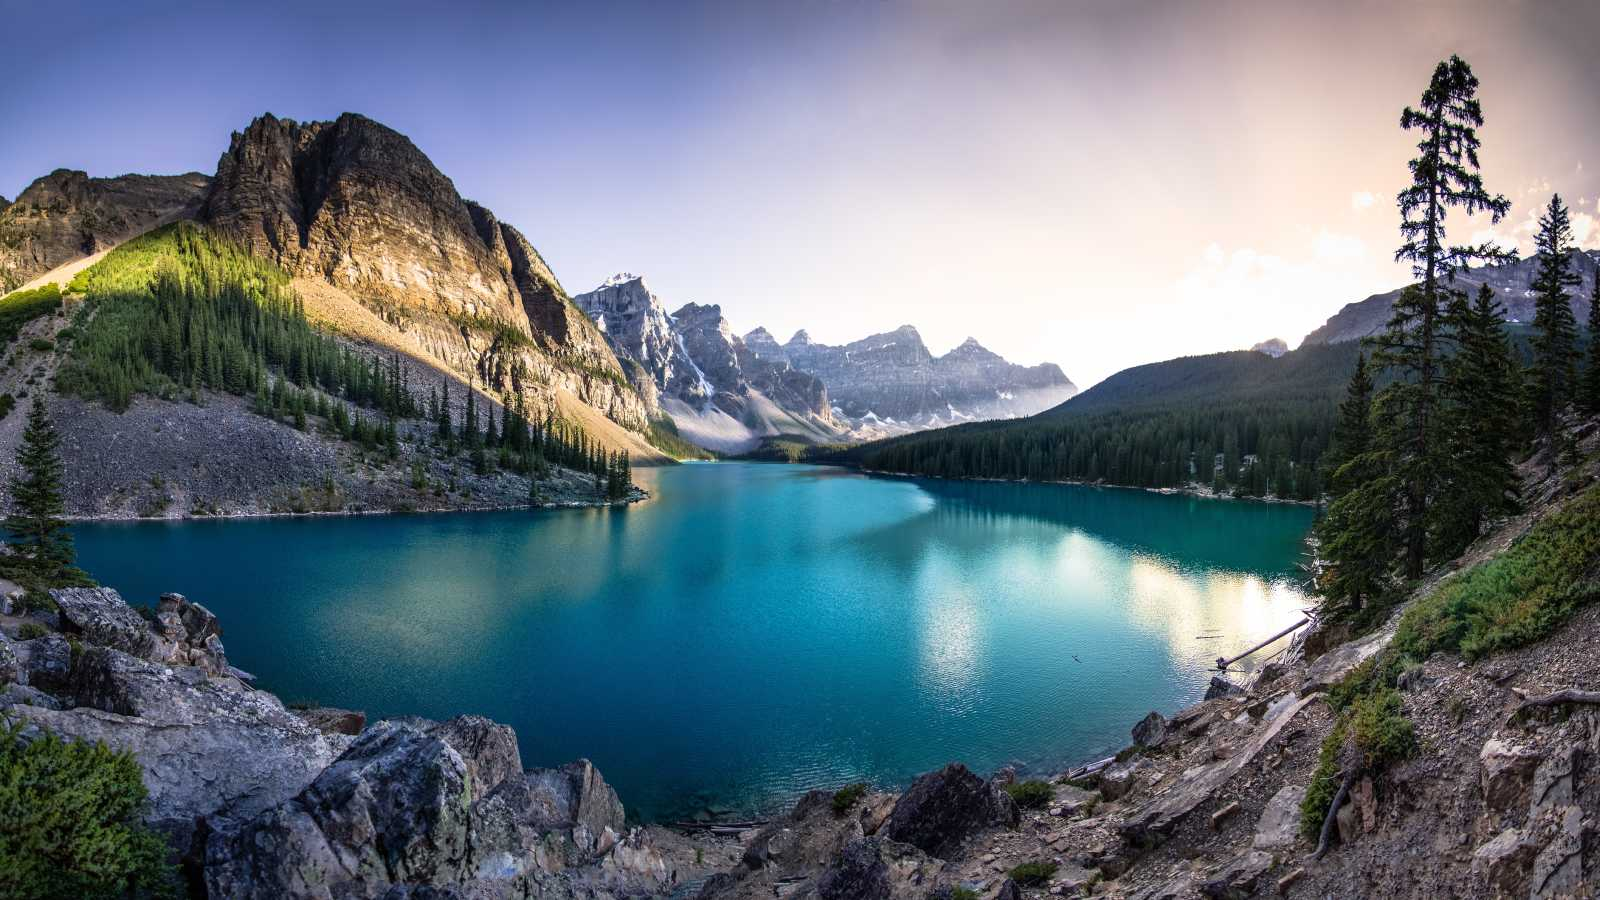 Panorama über Moraine Lake in Kanada